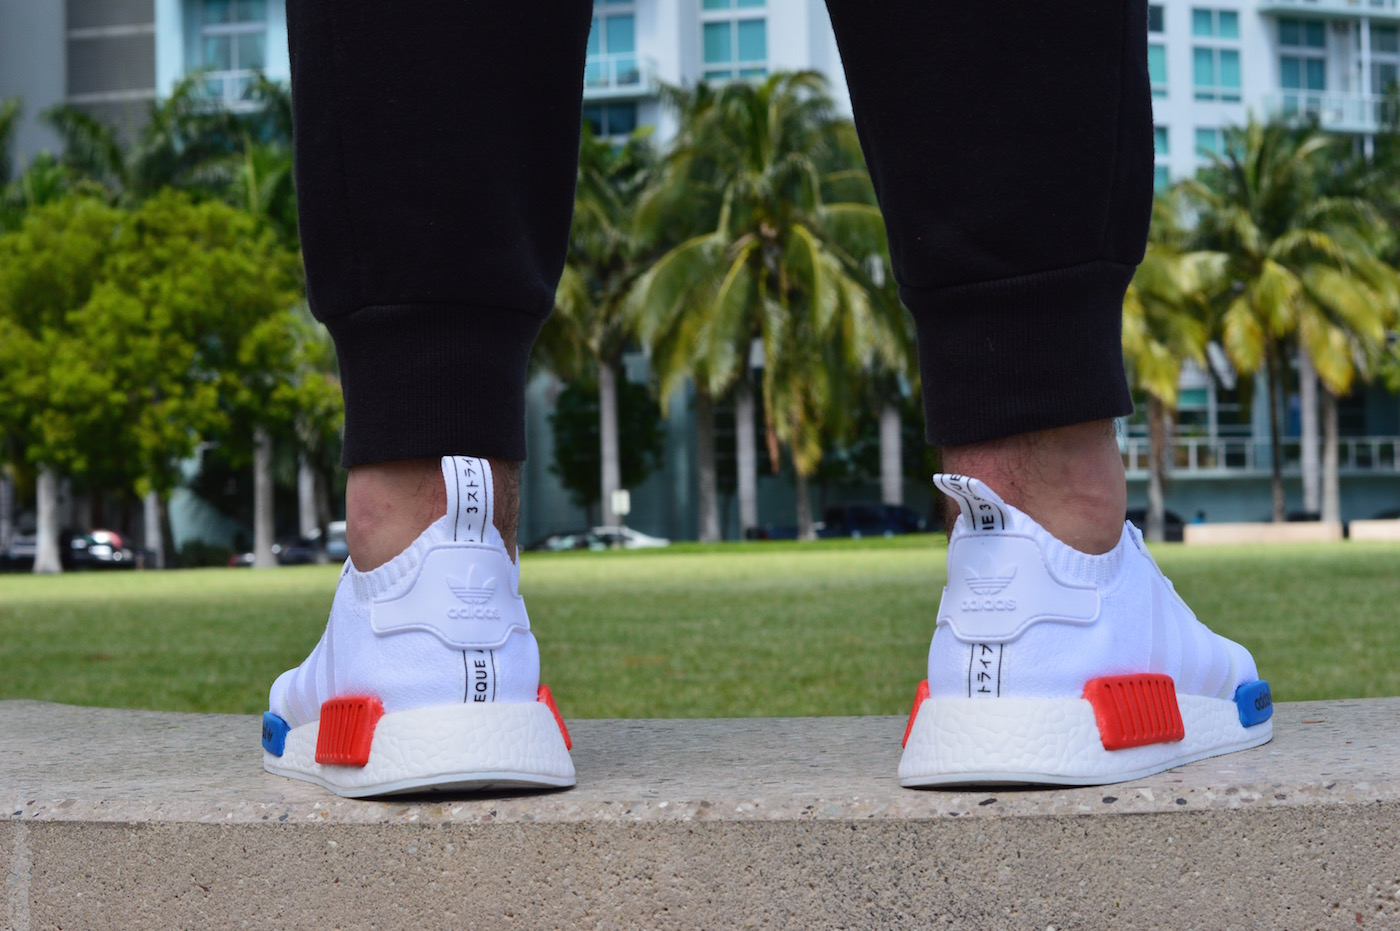 adidas NMD R1 Primeknit On Feet Back View White Red Blue